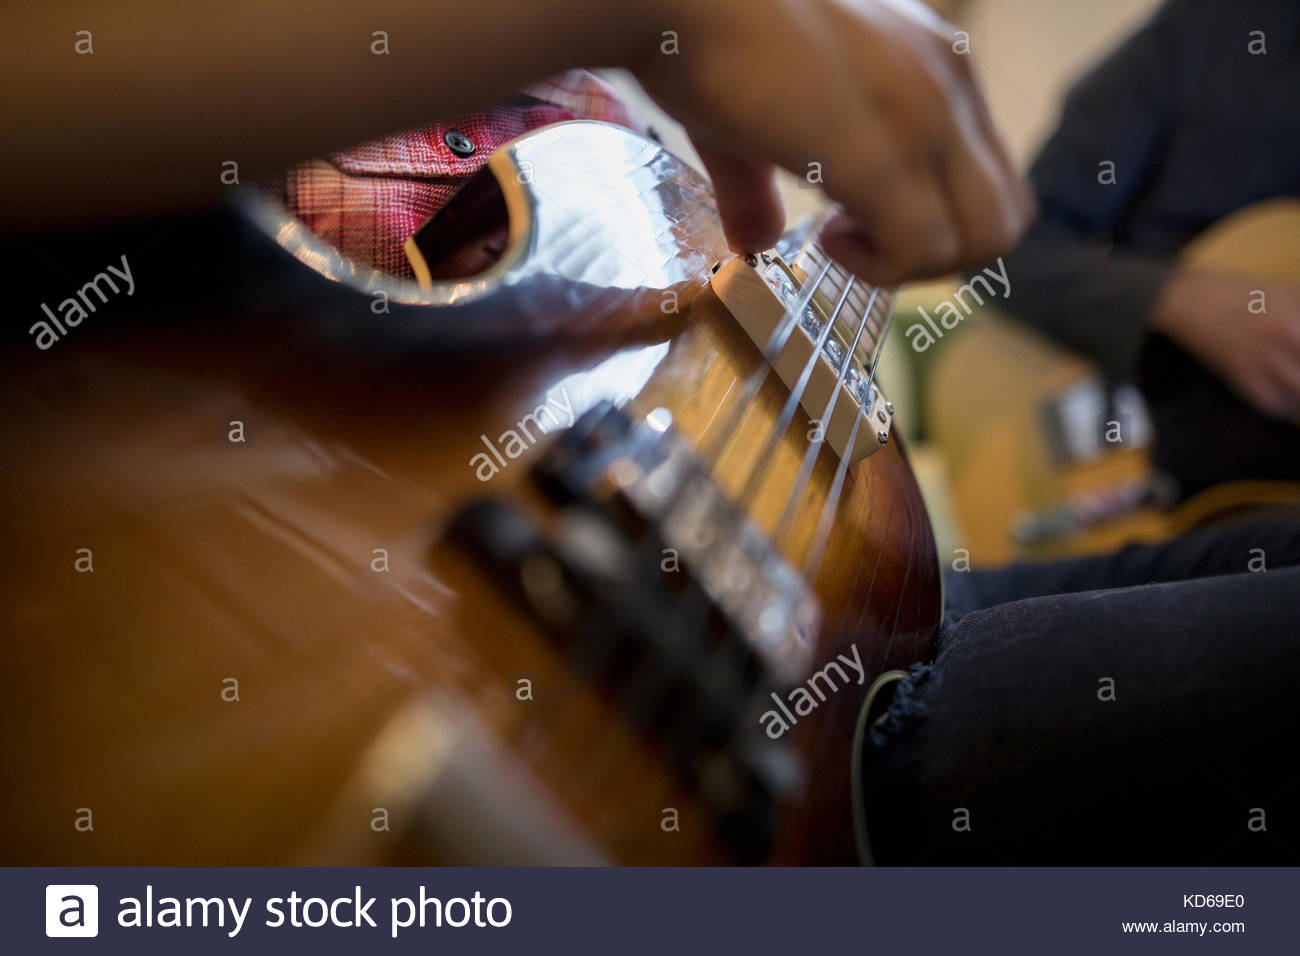 Close up musician strumming guitar - Stock Image